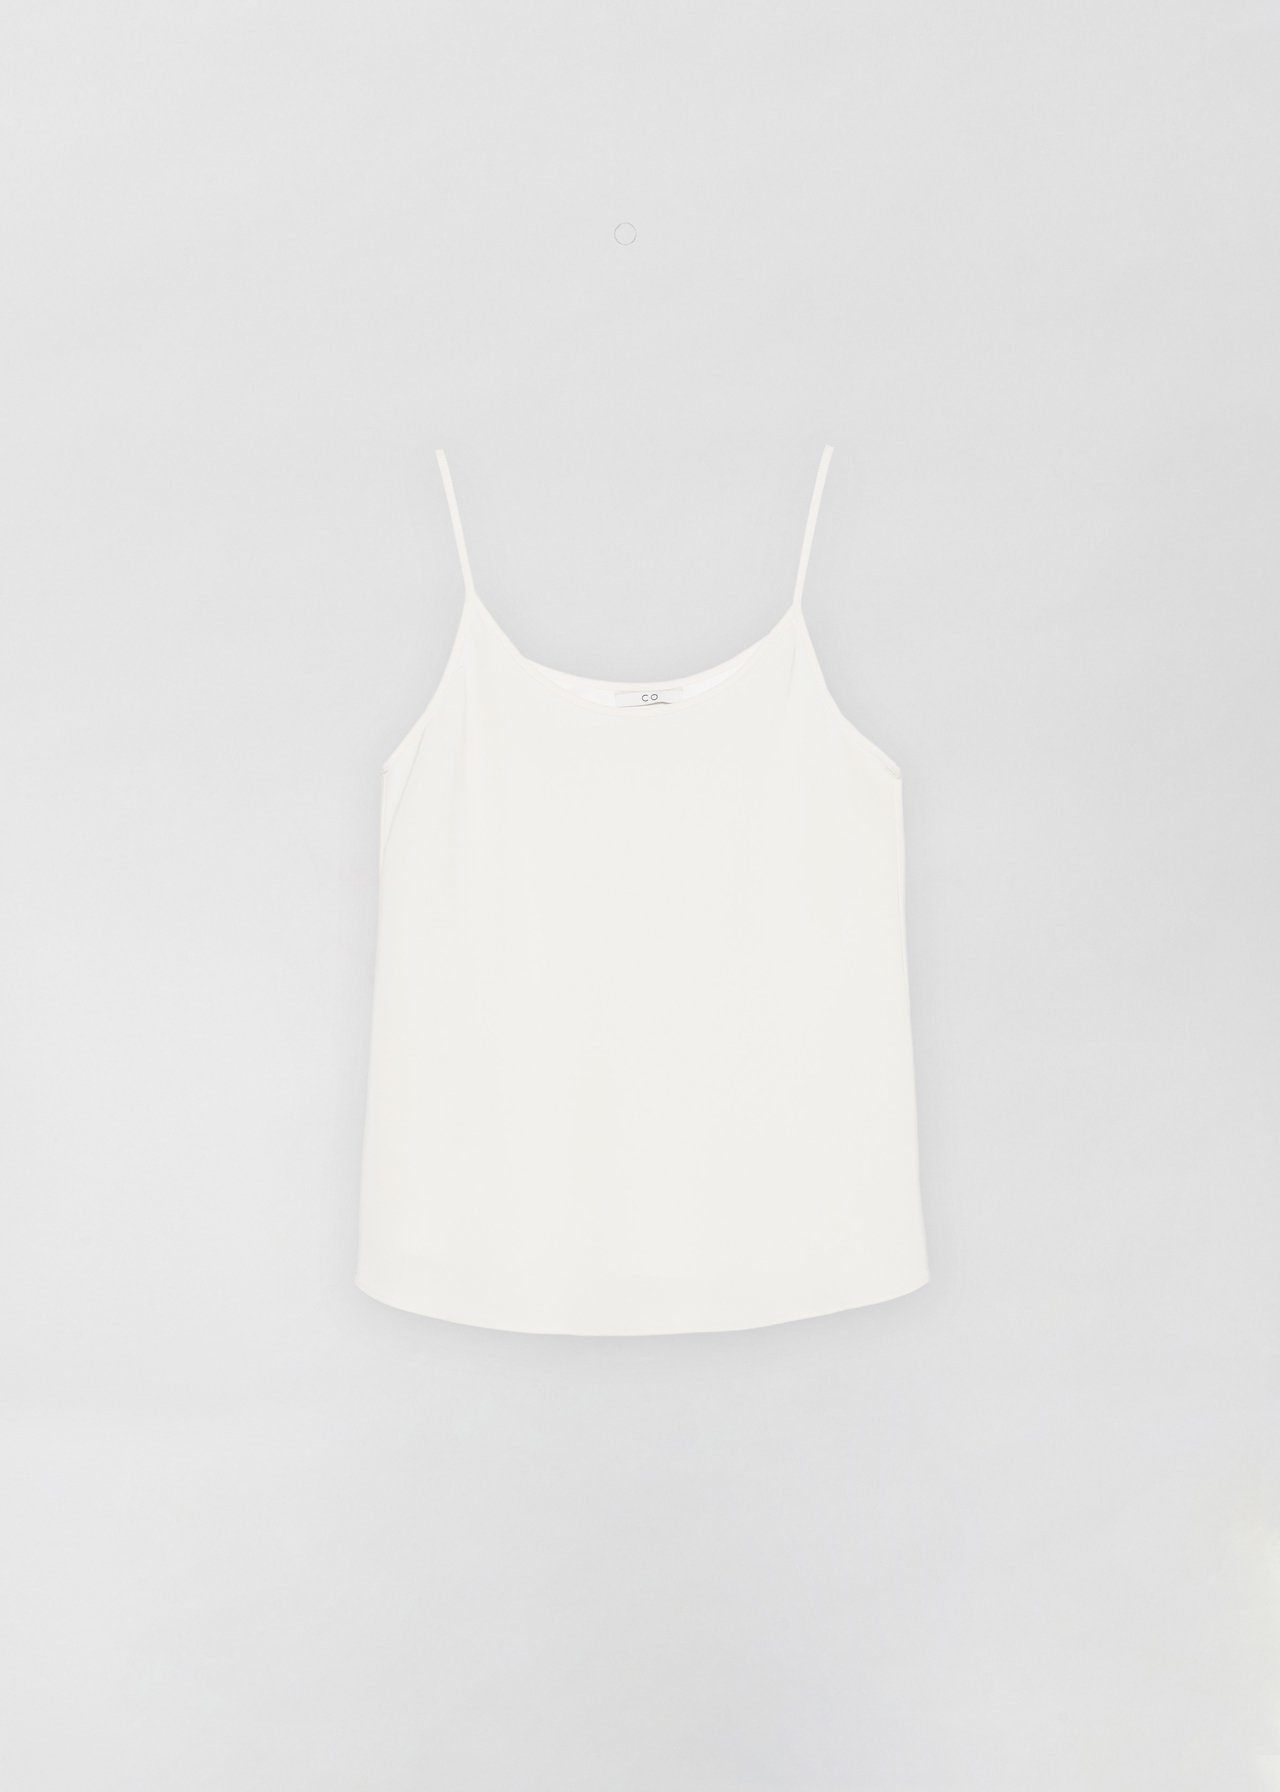 Camisole - Black in Ivory by Co Collections